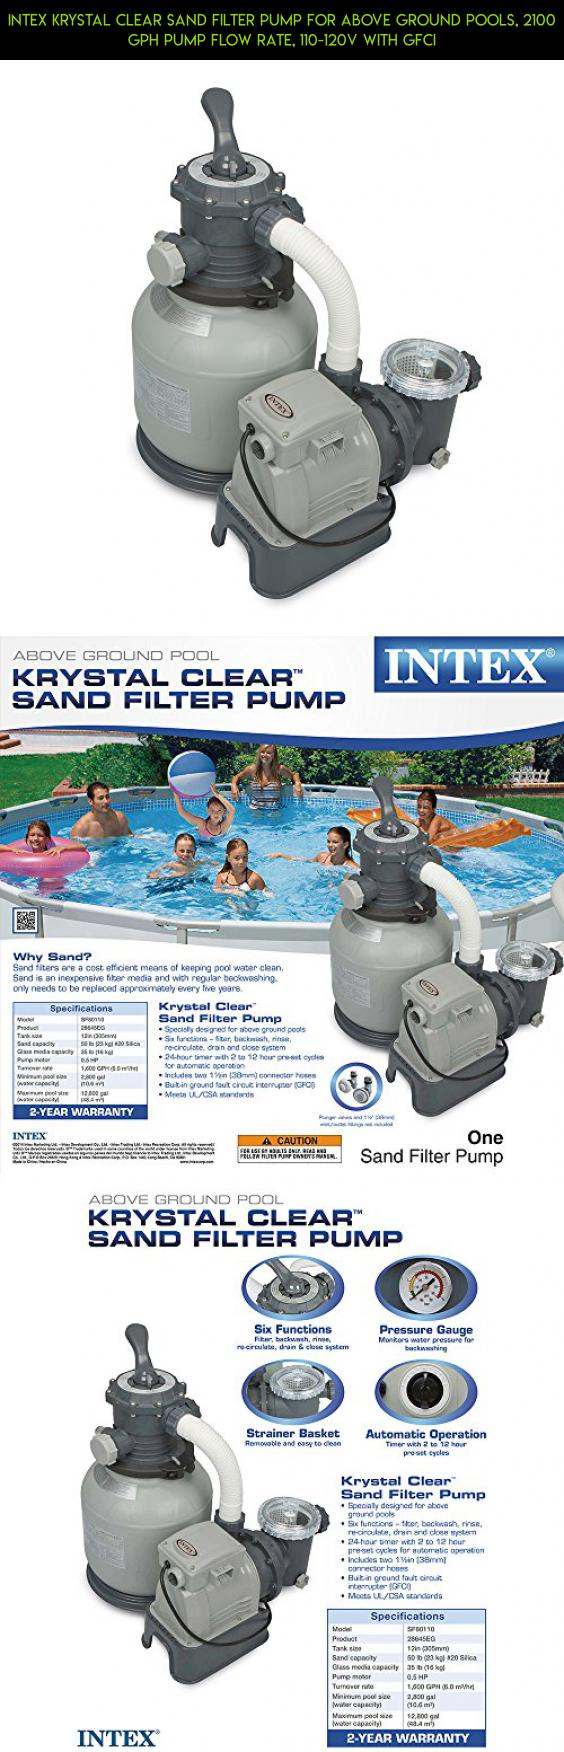 Intex Krystal Clear Sand Filter Pump For Above Ground Pools, 2100 GPH Pump  Flow Rate